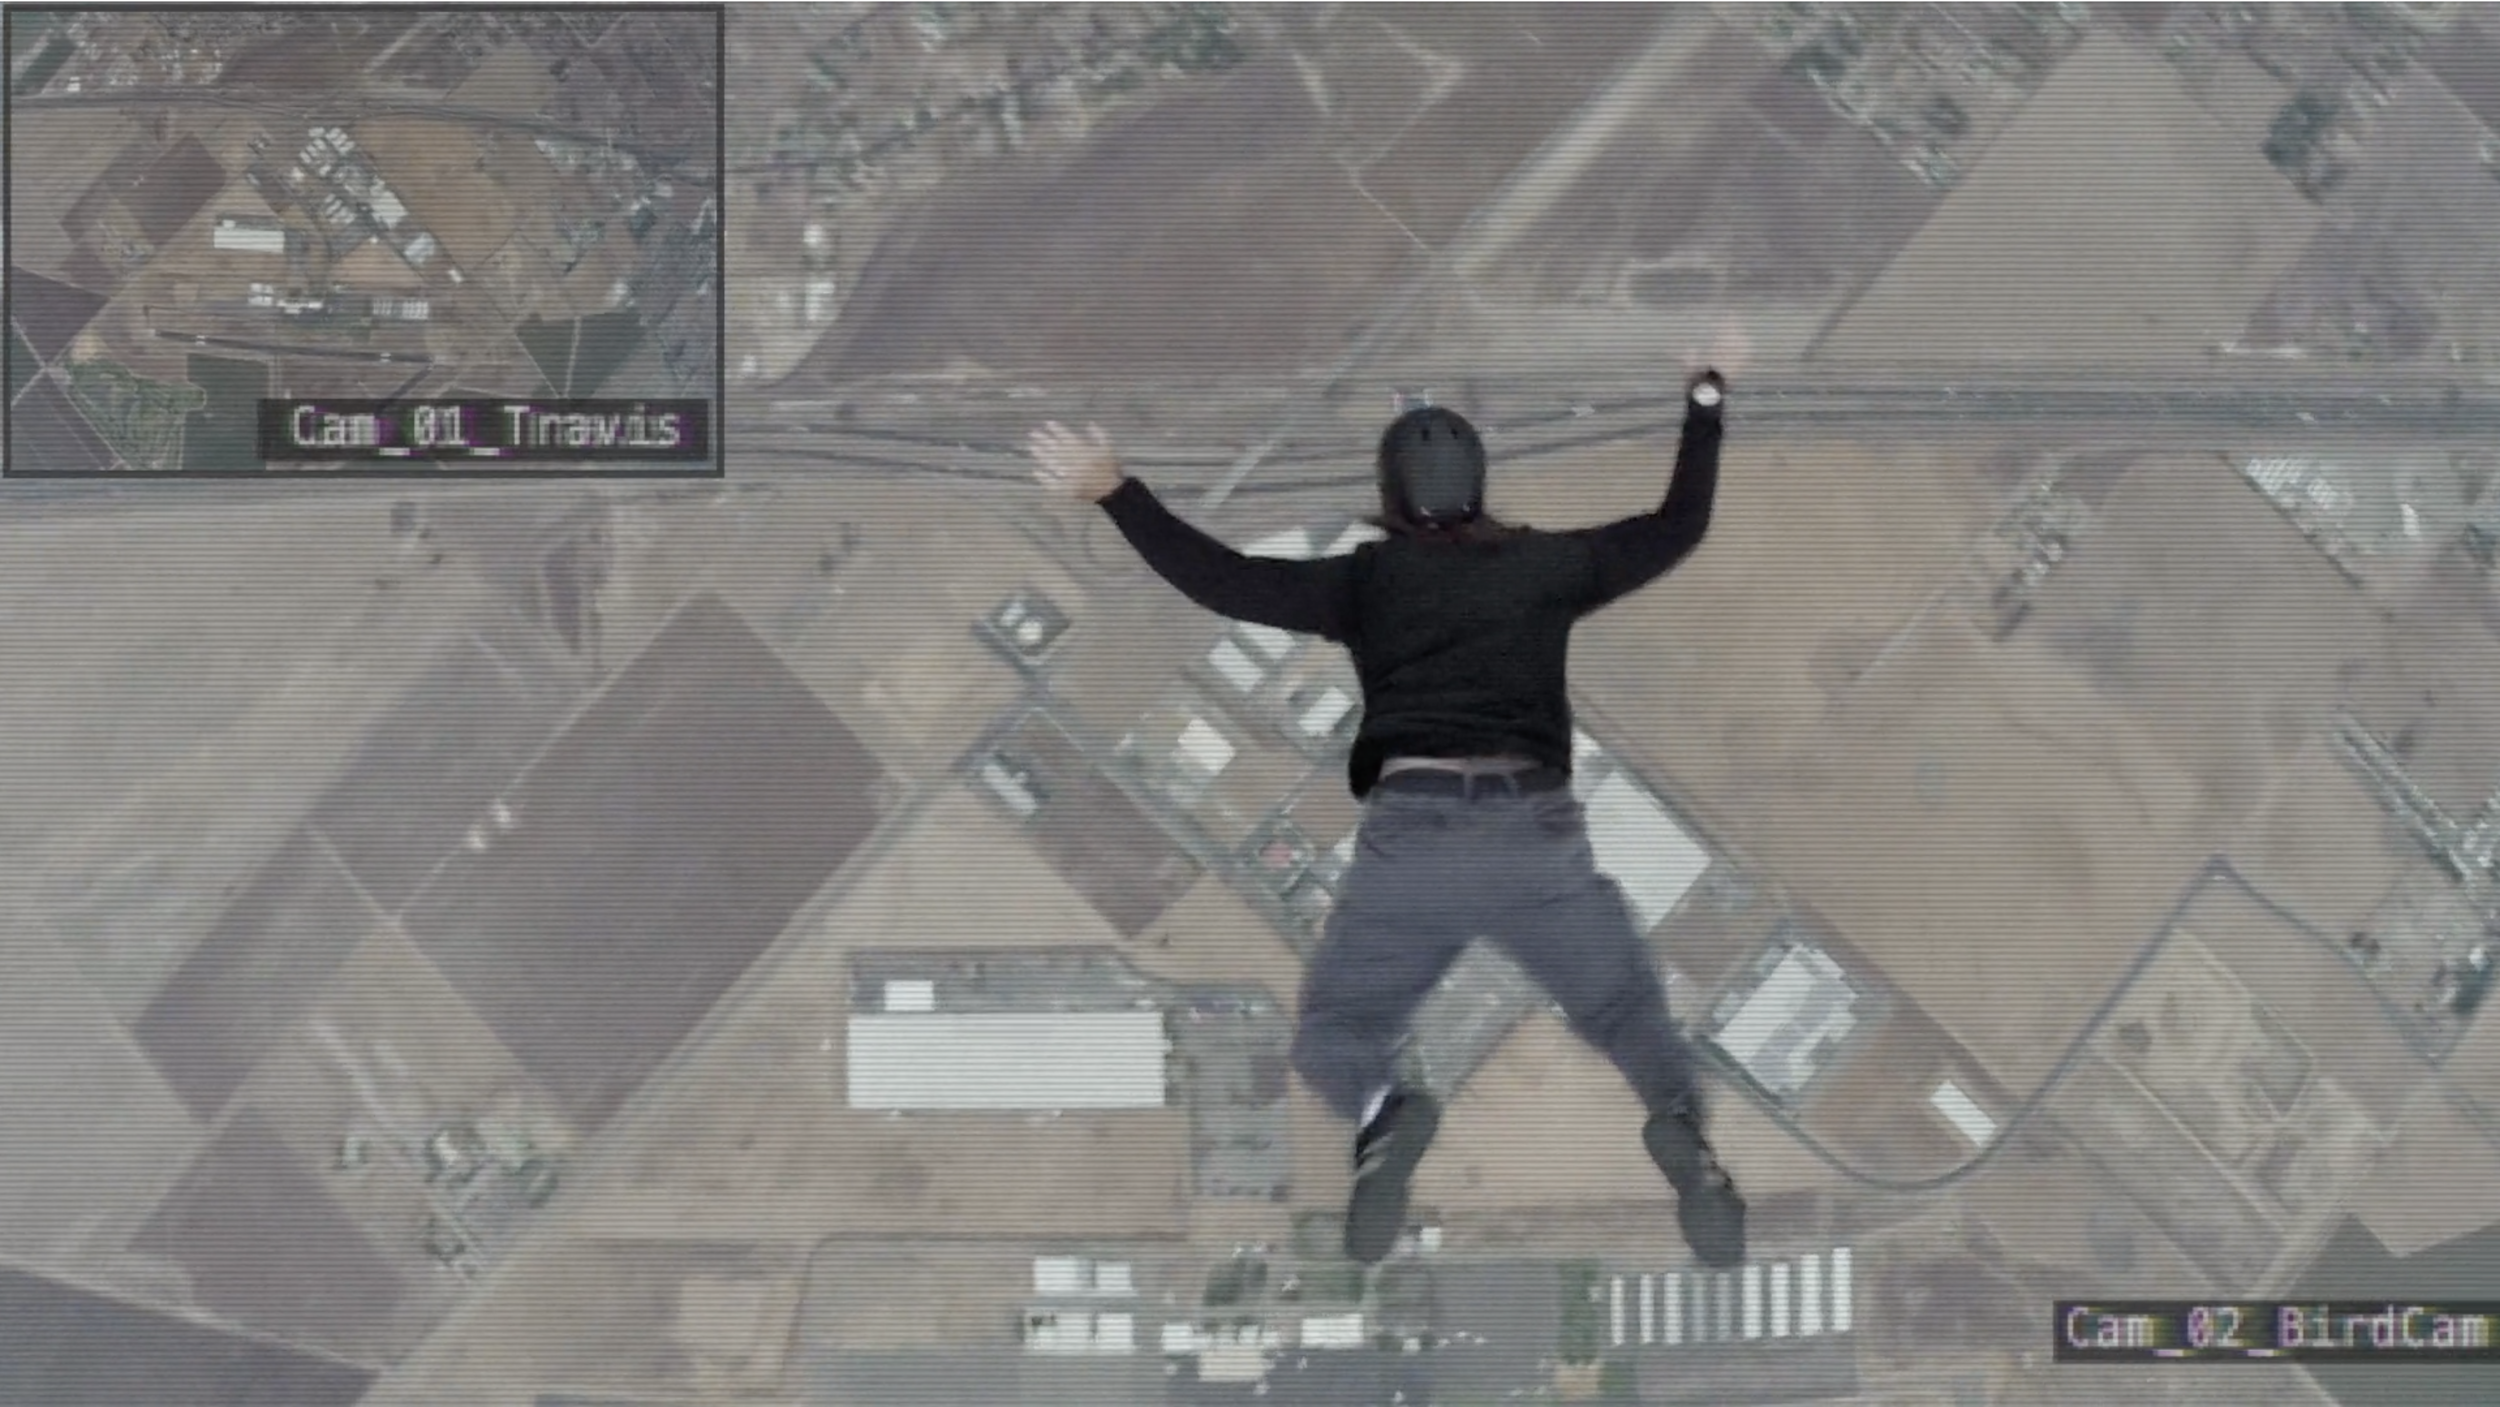 Man Jumps Out of Plane w/o Parachute - Viral Ad